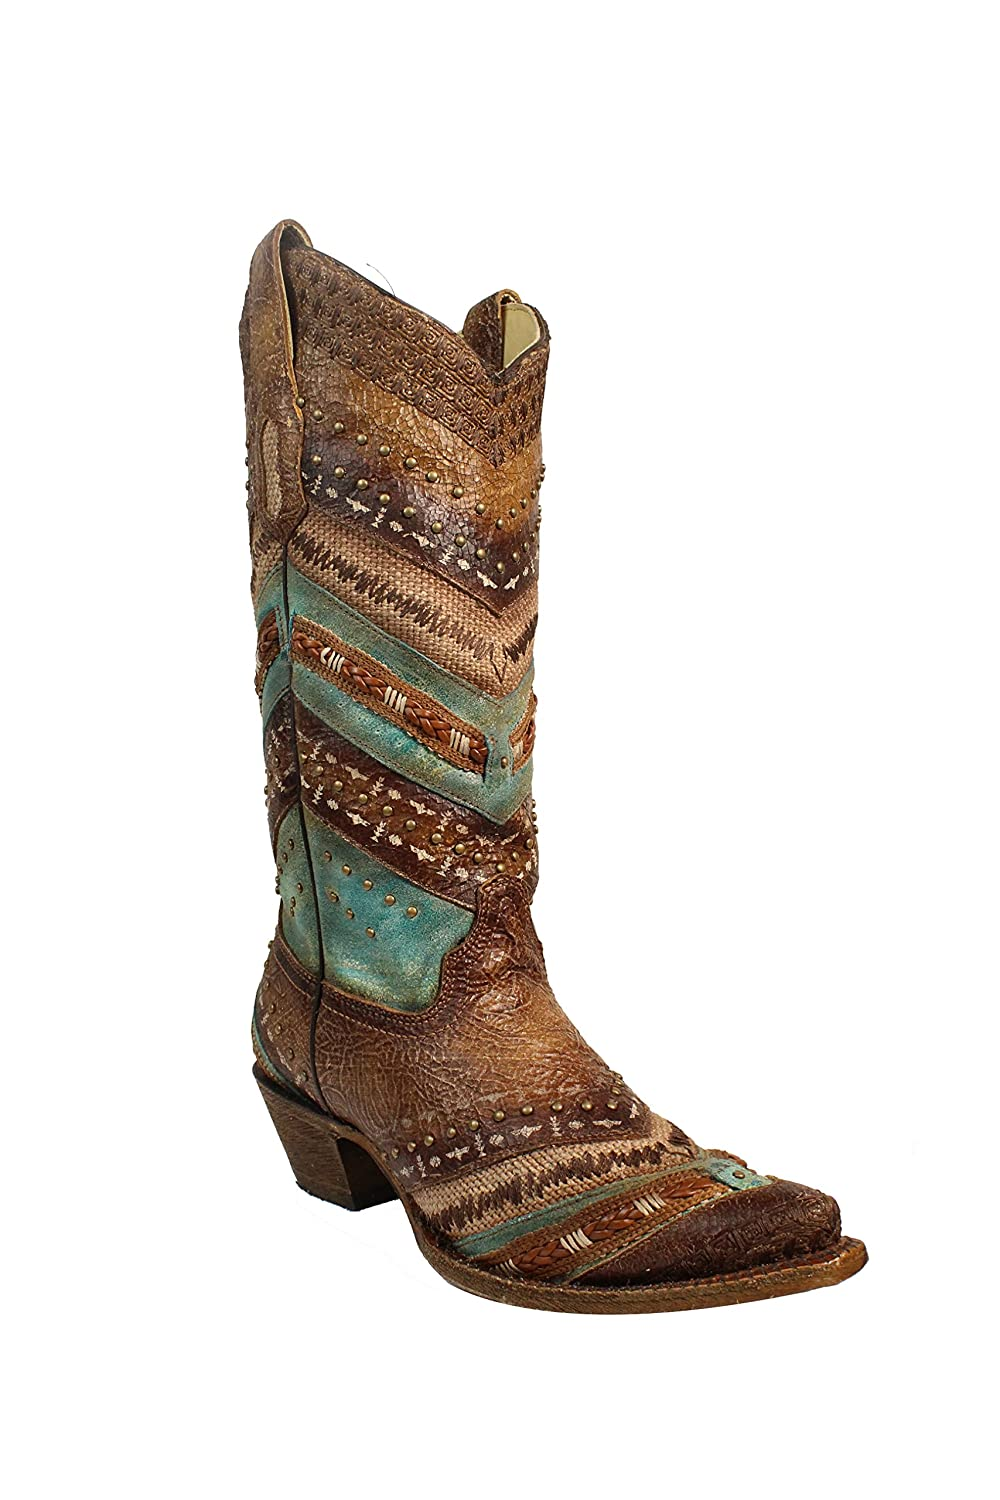 Corral & Women's 13-inch Turquoise/Brown Embroidery & Corral Studs Snip Toe Cowboy Boots B072ZPWDB3 11 B(M) US|Brown 968a0e